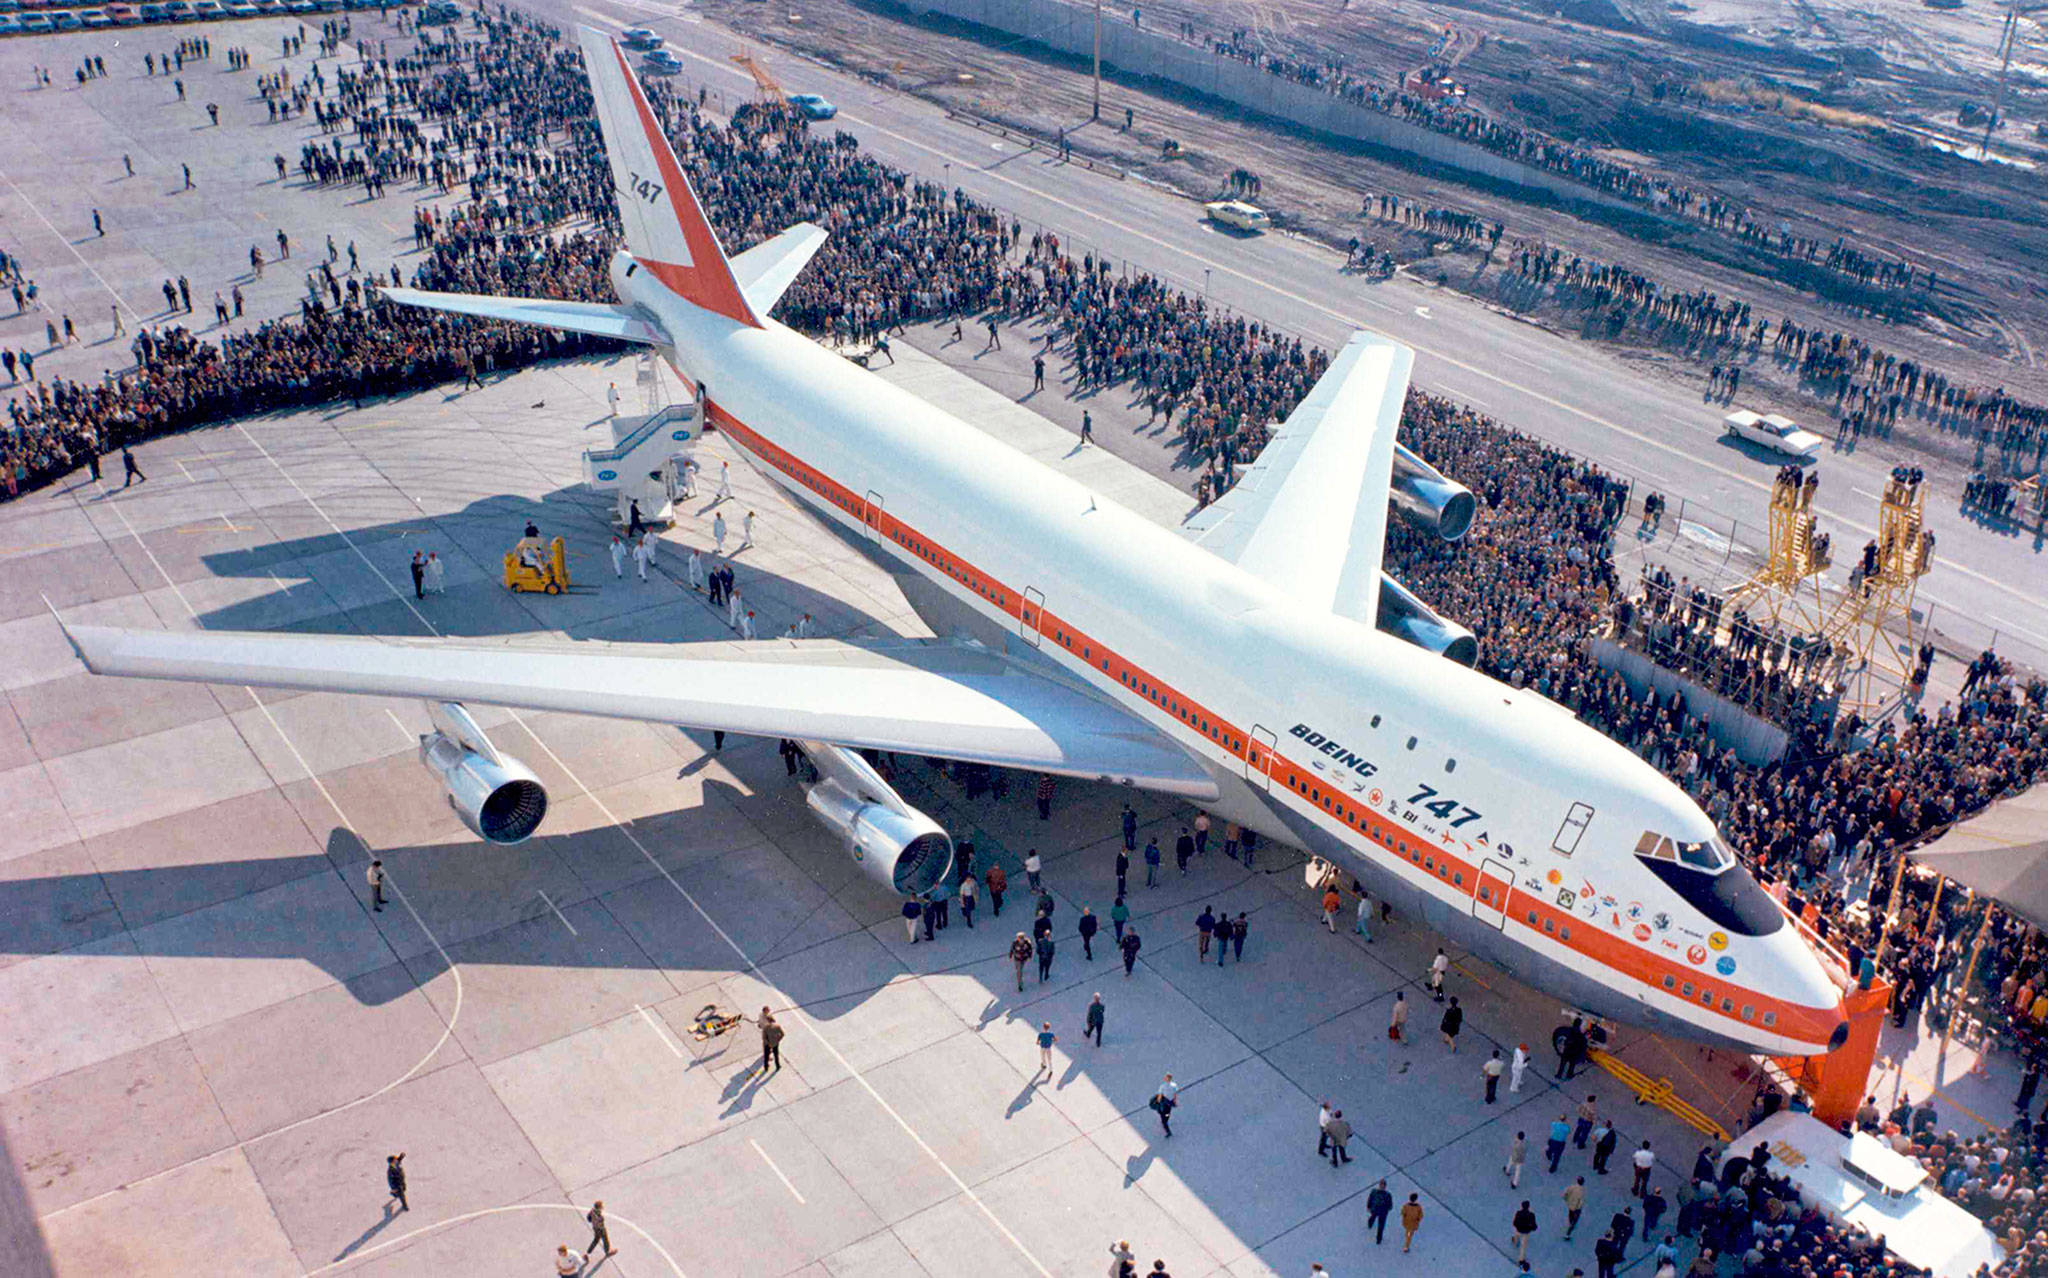 The rollout ceremony for the first Boeing 747 at the Everett factory.  (Boeing Co